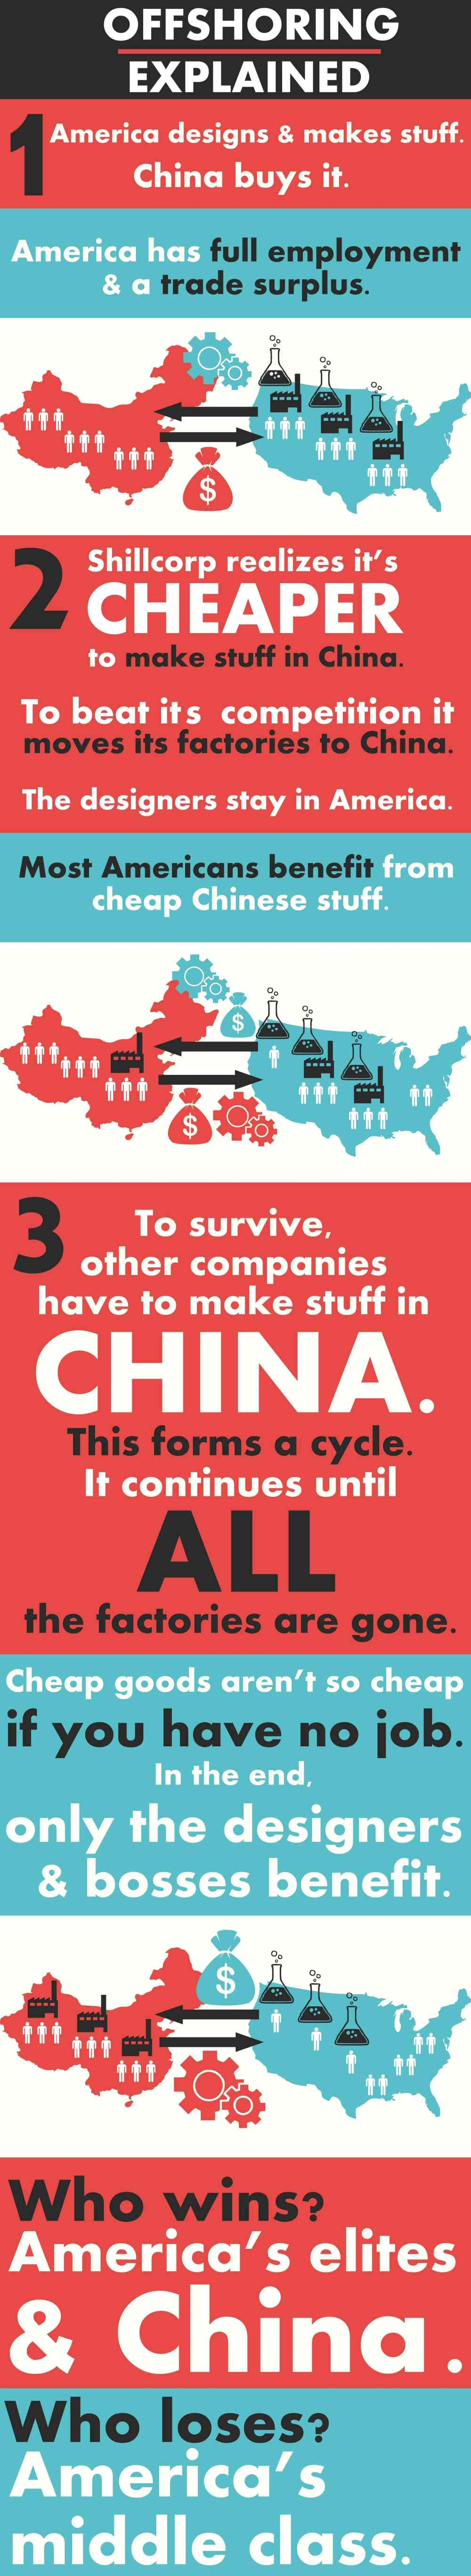 how does offshore outsourcing work, and how does it impact America? infographic